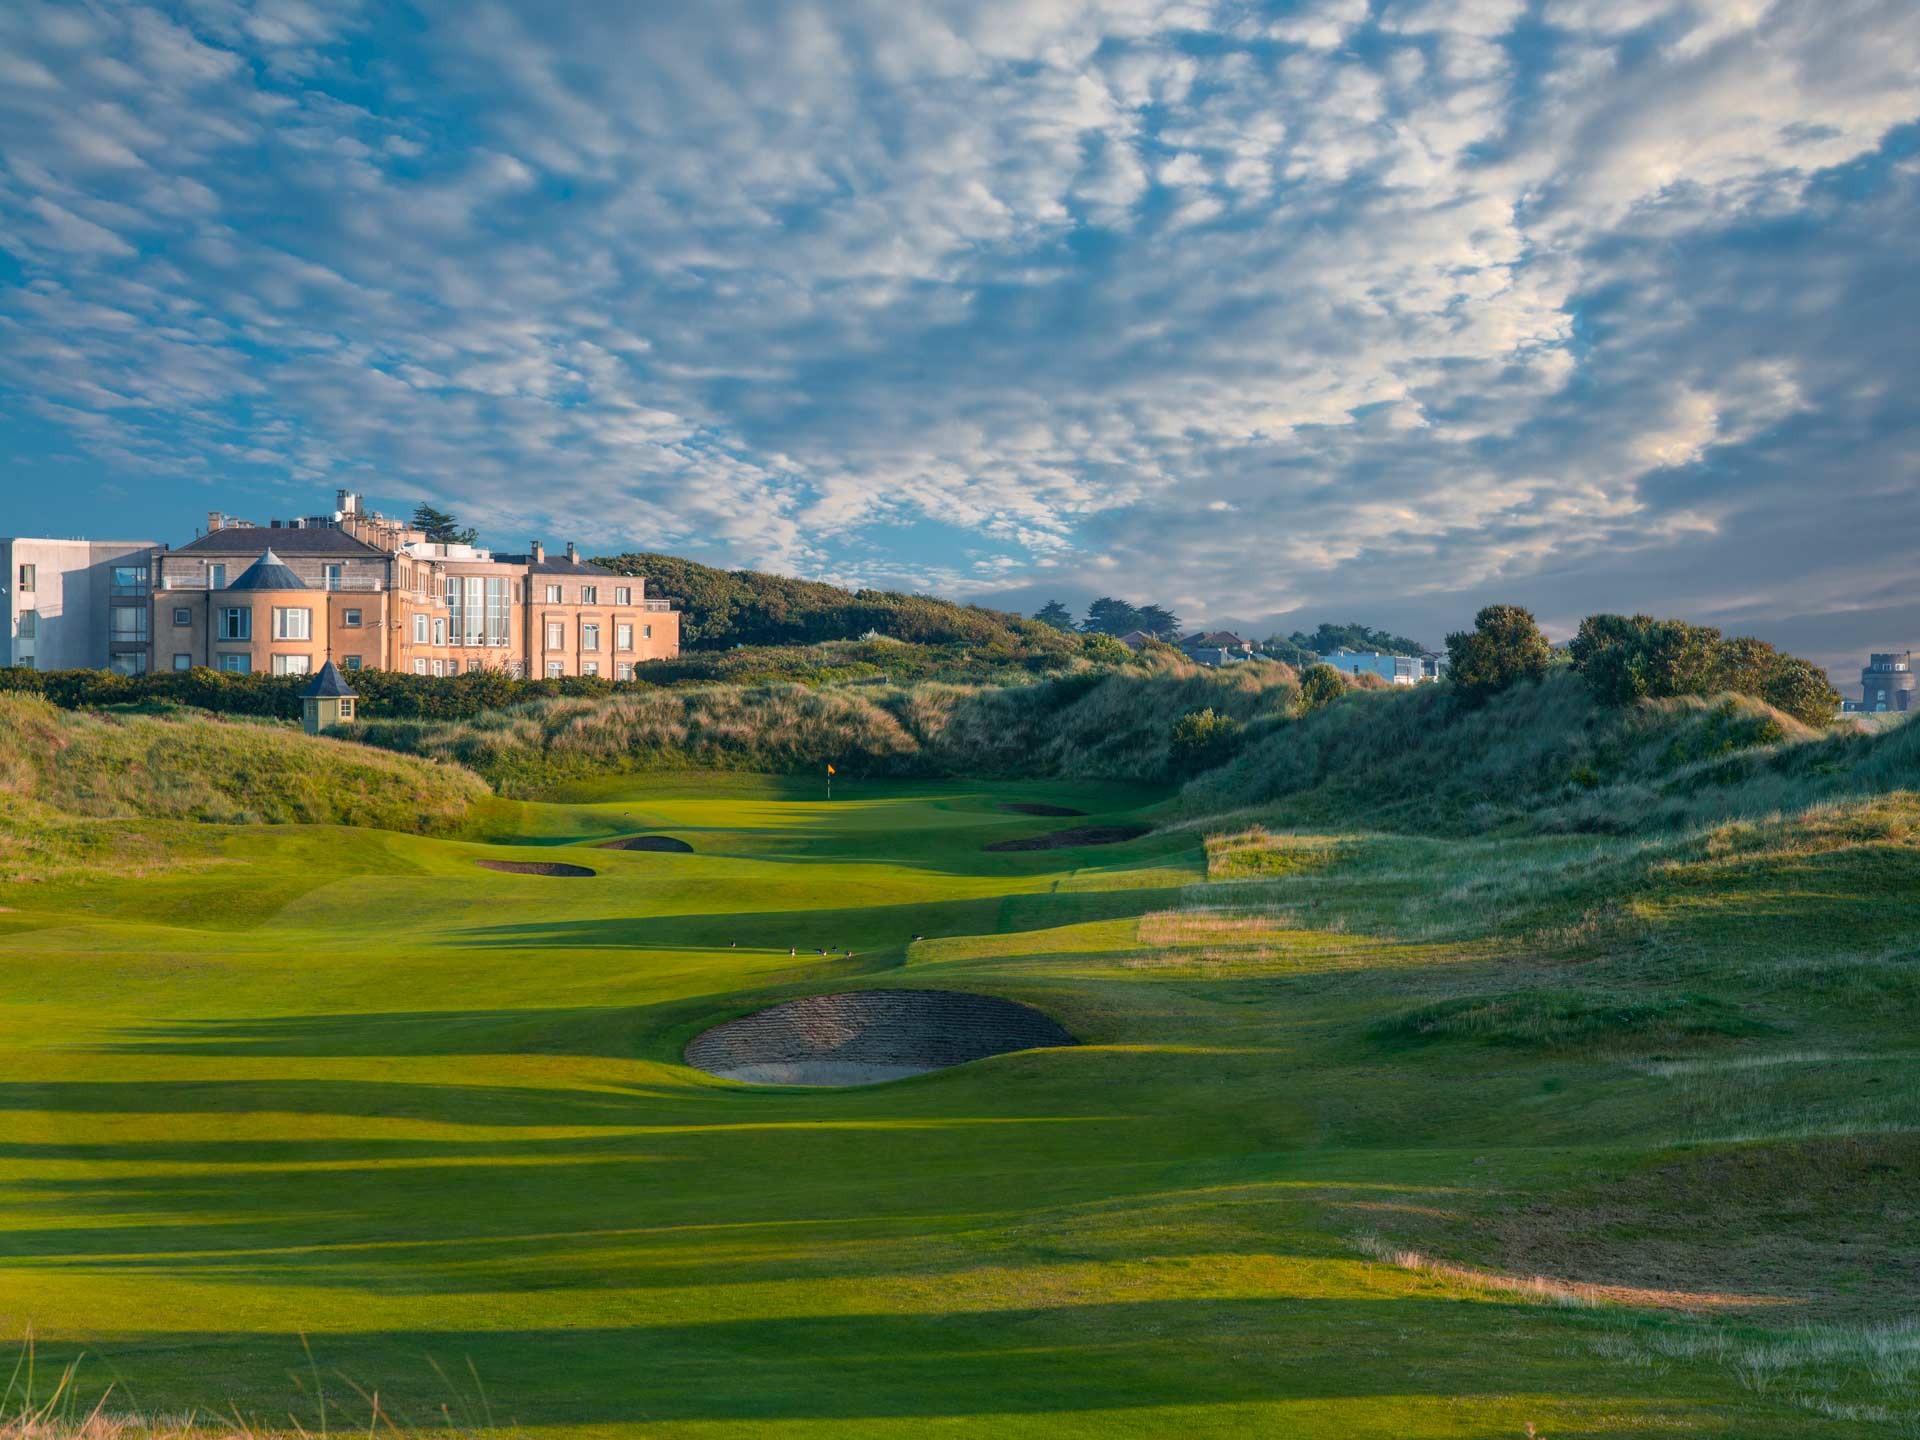 View of the Portmarnock Resort from the golf course